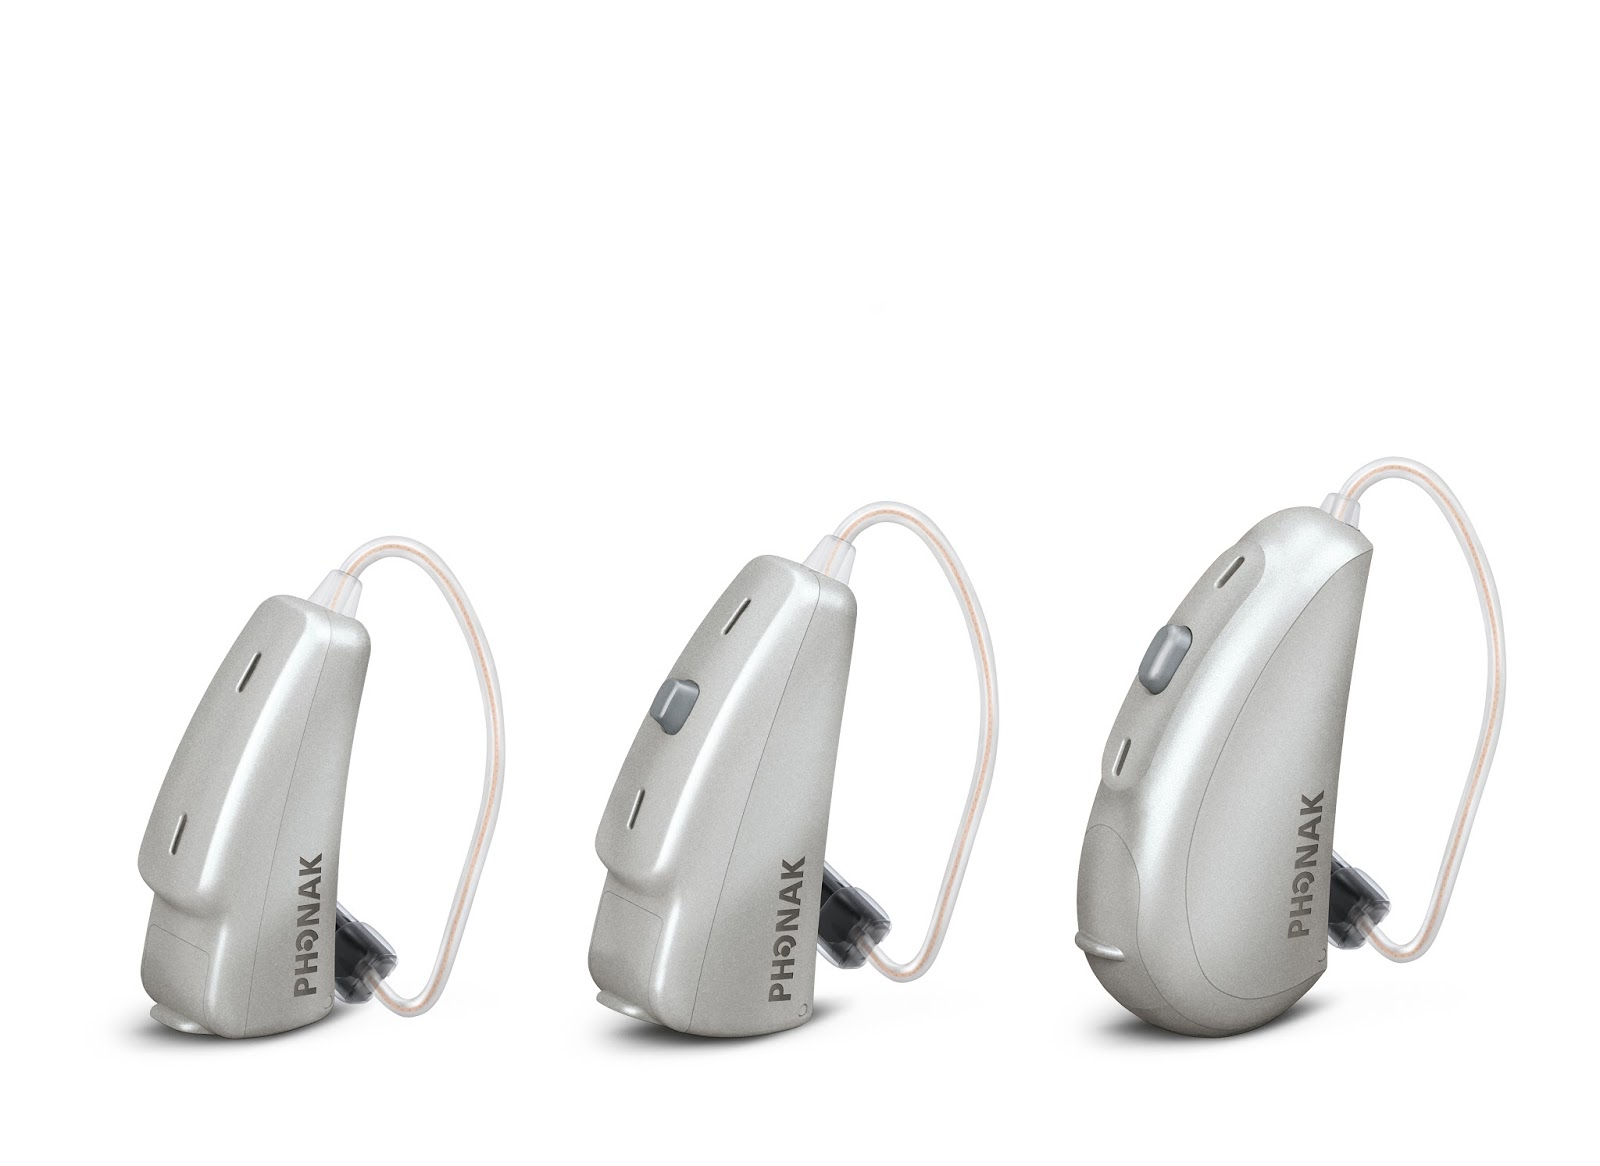 Phonak Audeo Q90